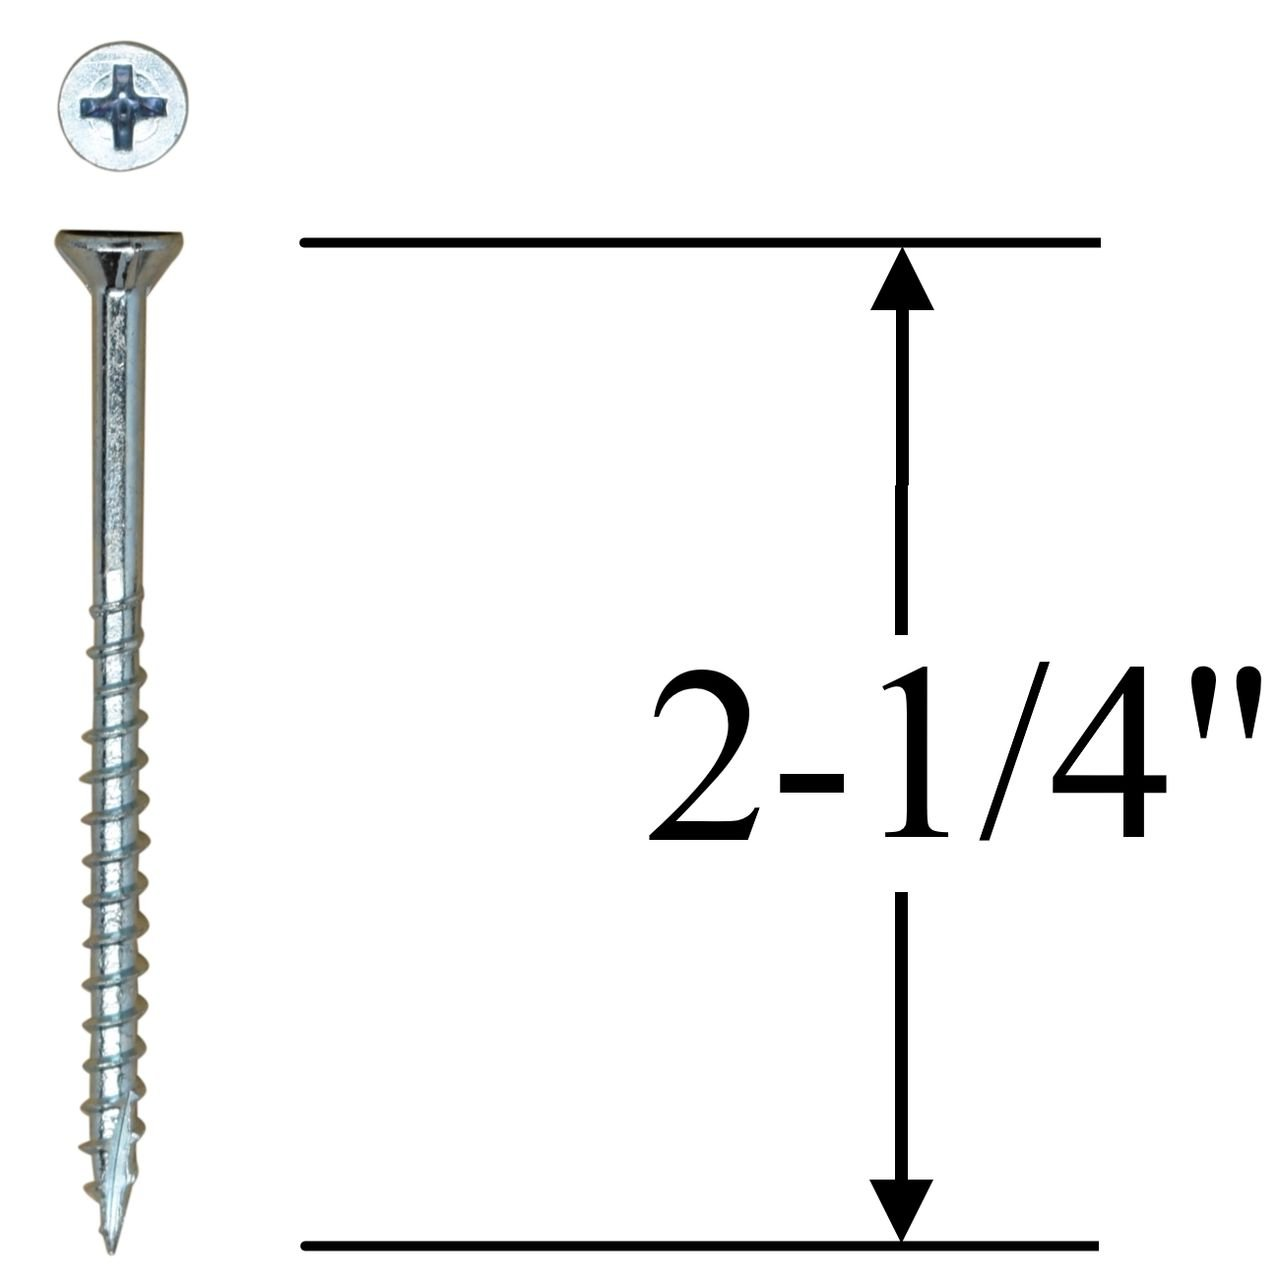 #8 x 2-1/4'' Flat Head Wood Screws - #2 Philips Drive - Countersinking Nibs - Auger Point - Deep Thread Design For Cabinets & All Interior Work - Zinc Plated - 2 Lb. Box (+- 272 pieces) by Desunia (Image #2)